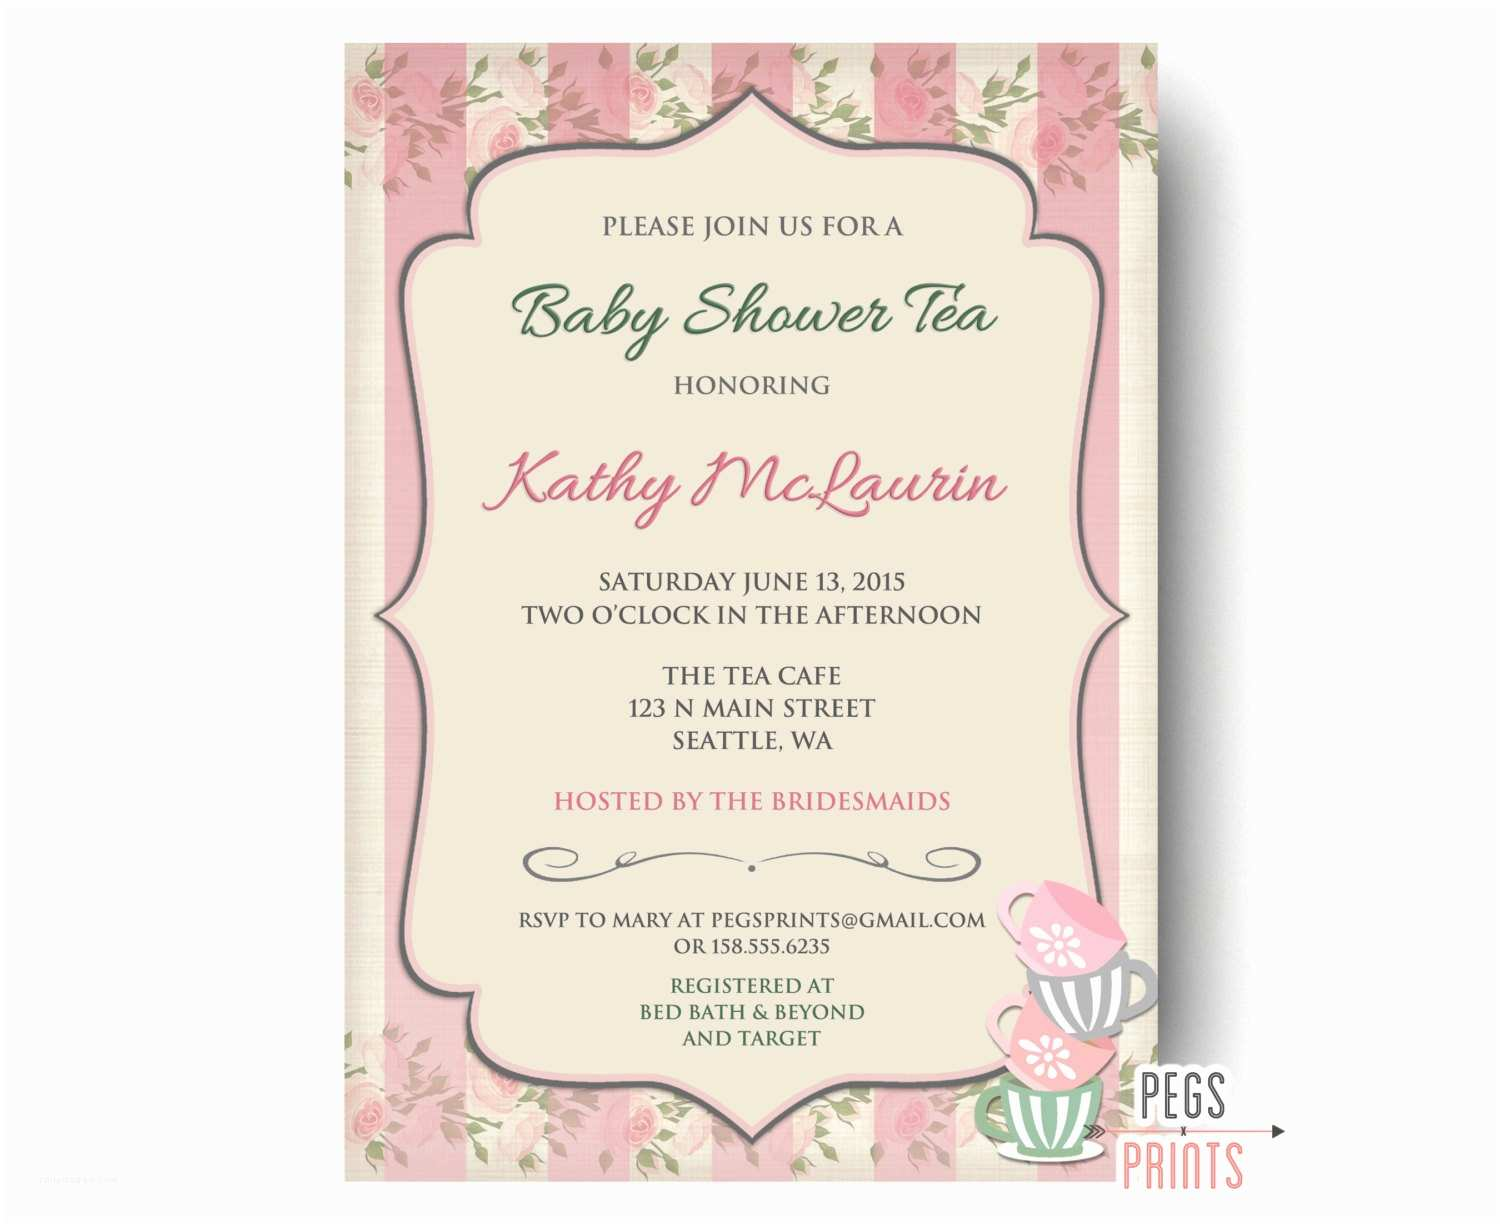 Baby Shower Tea Party Invitations Baby Shower Tea Party Invitation Printable Baby Shower